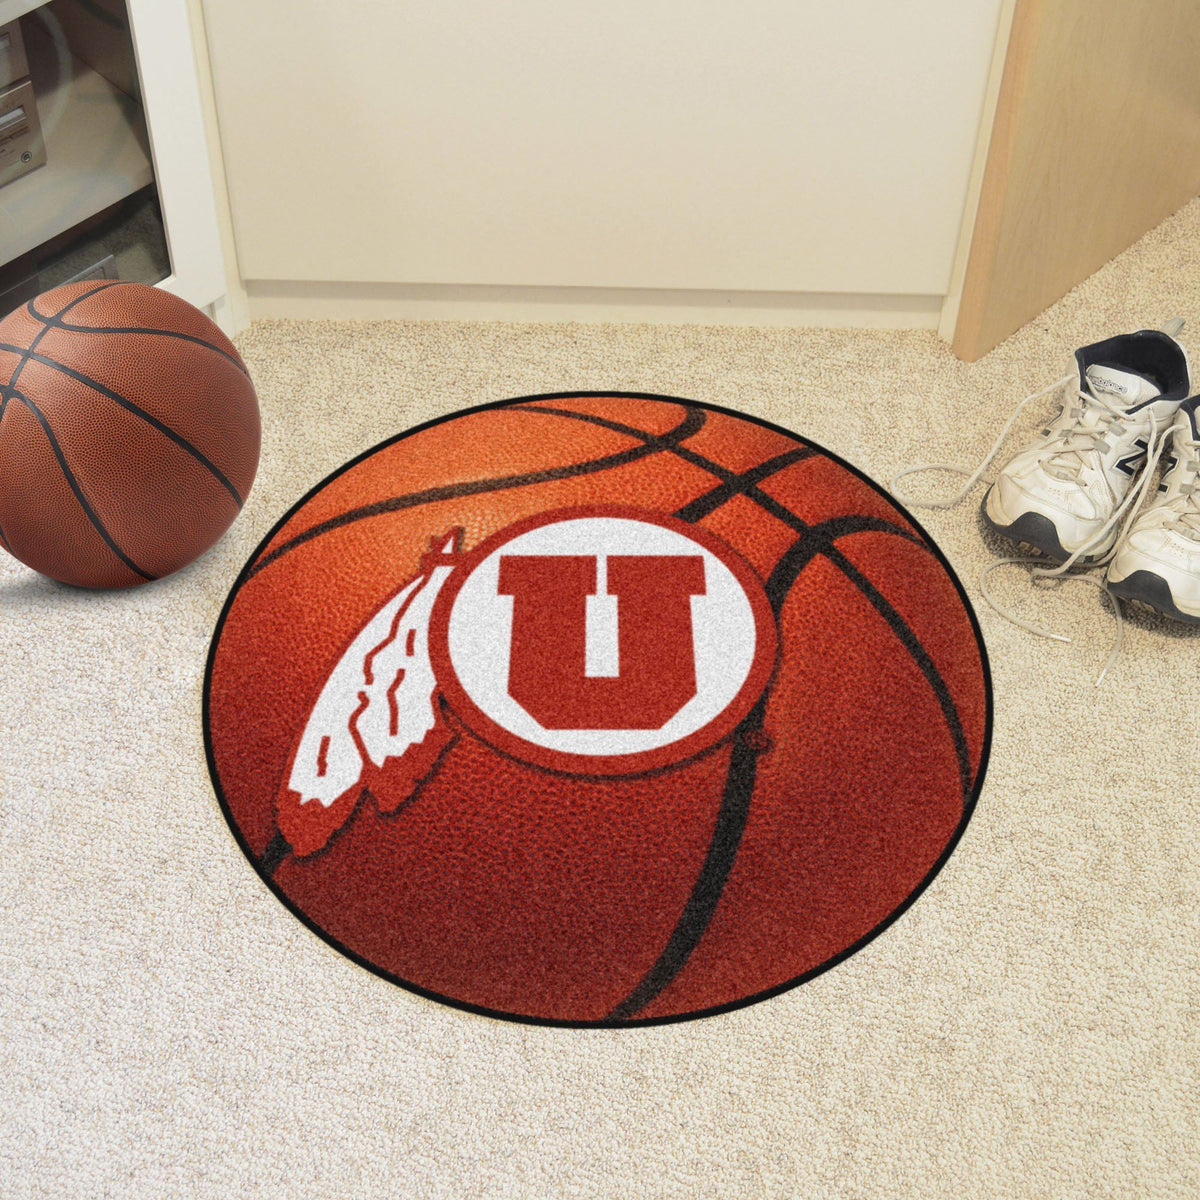 Collegiate - Basketball Mat: T - Z Collegiate Mats, Rectangular Mats, Basketball Mat, Collegiate, Home Fan Mats Utah